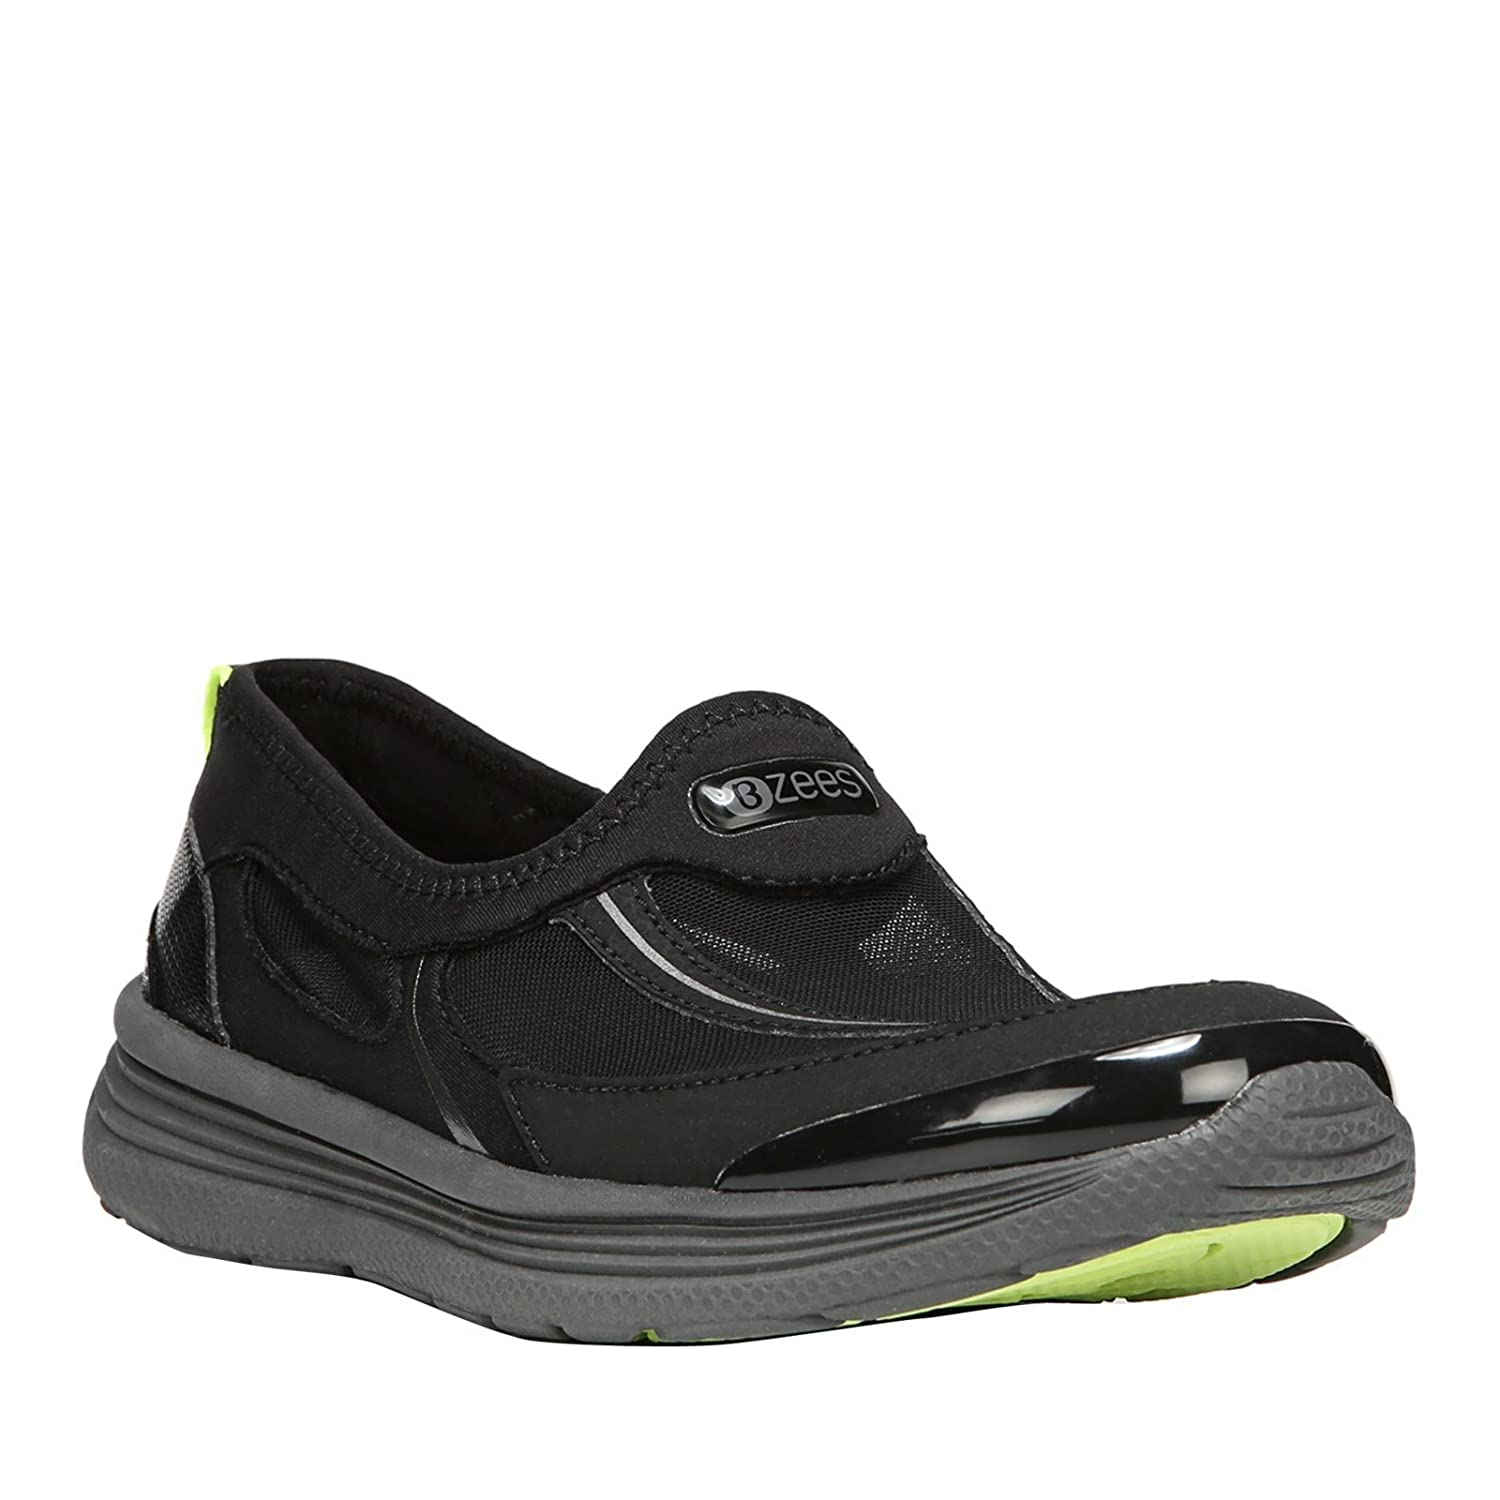 7c11ef3654f9 BZees Sea Dogs Wavy Water Shoes